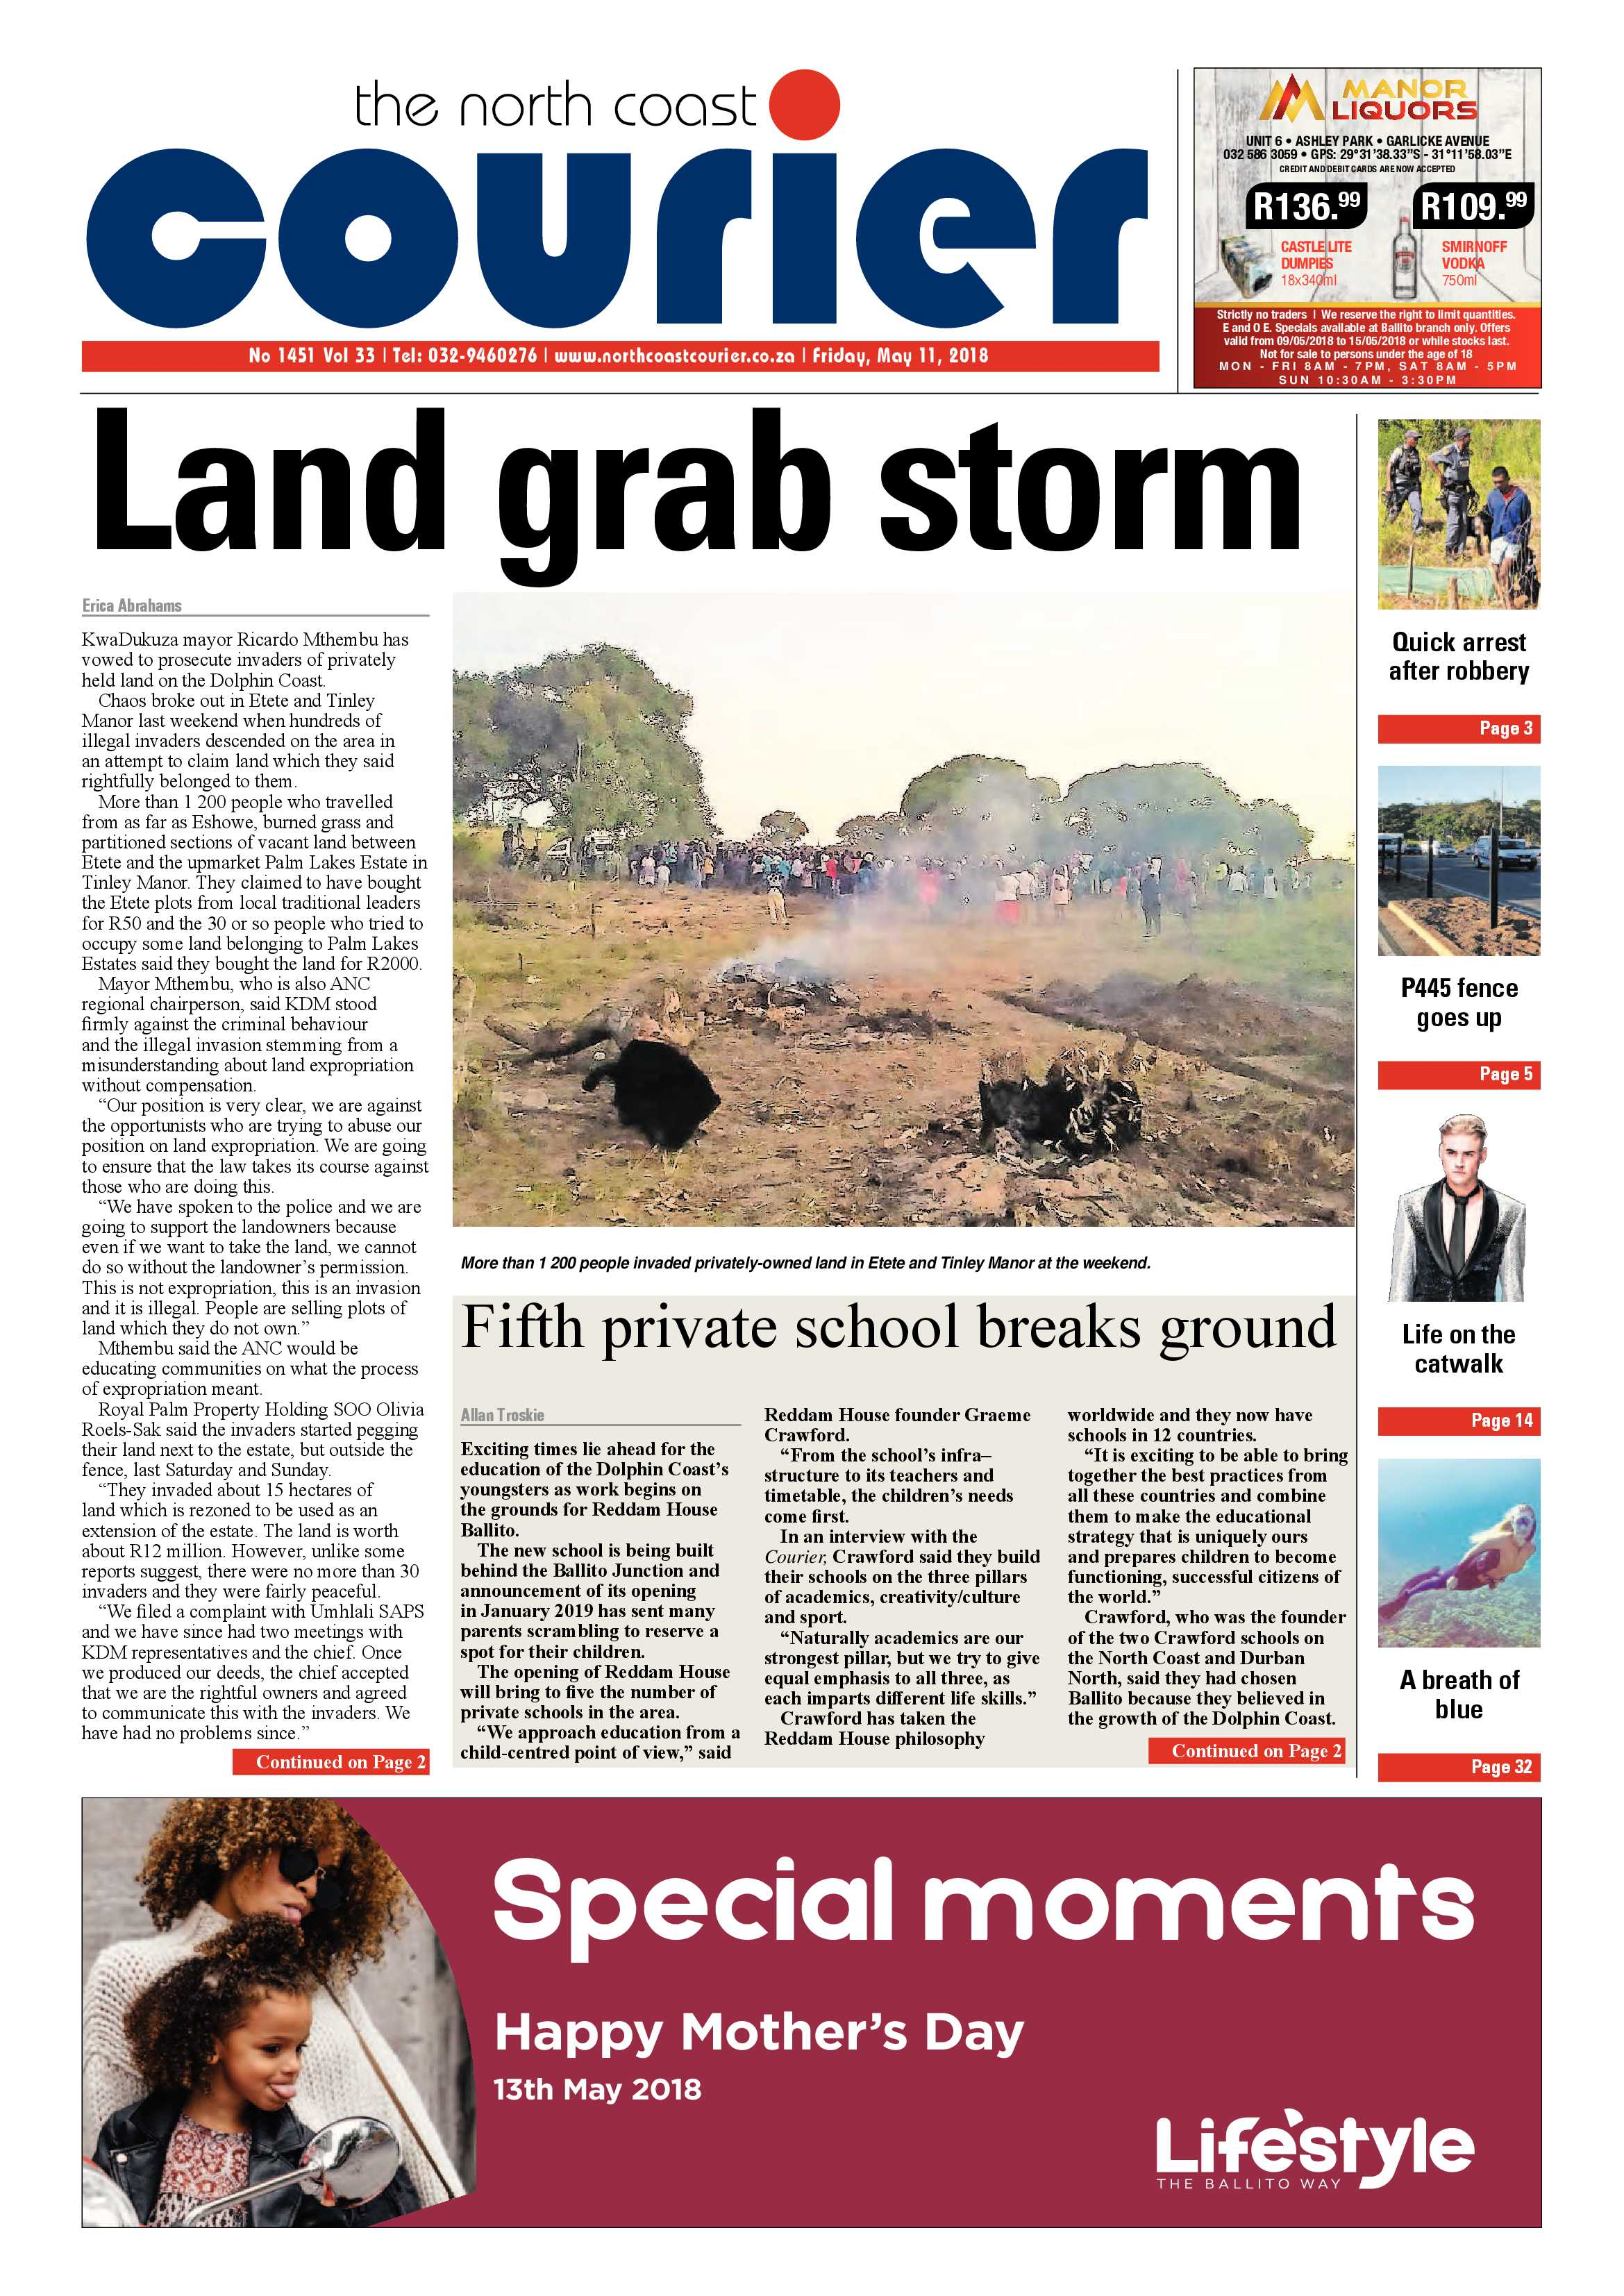 The North Coast Courier 11 May 2018